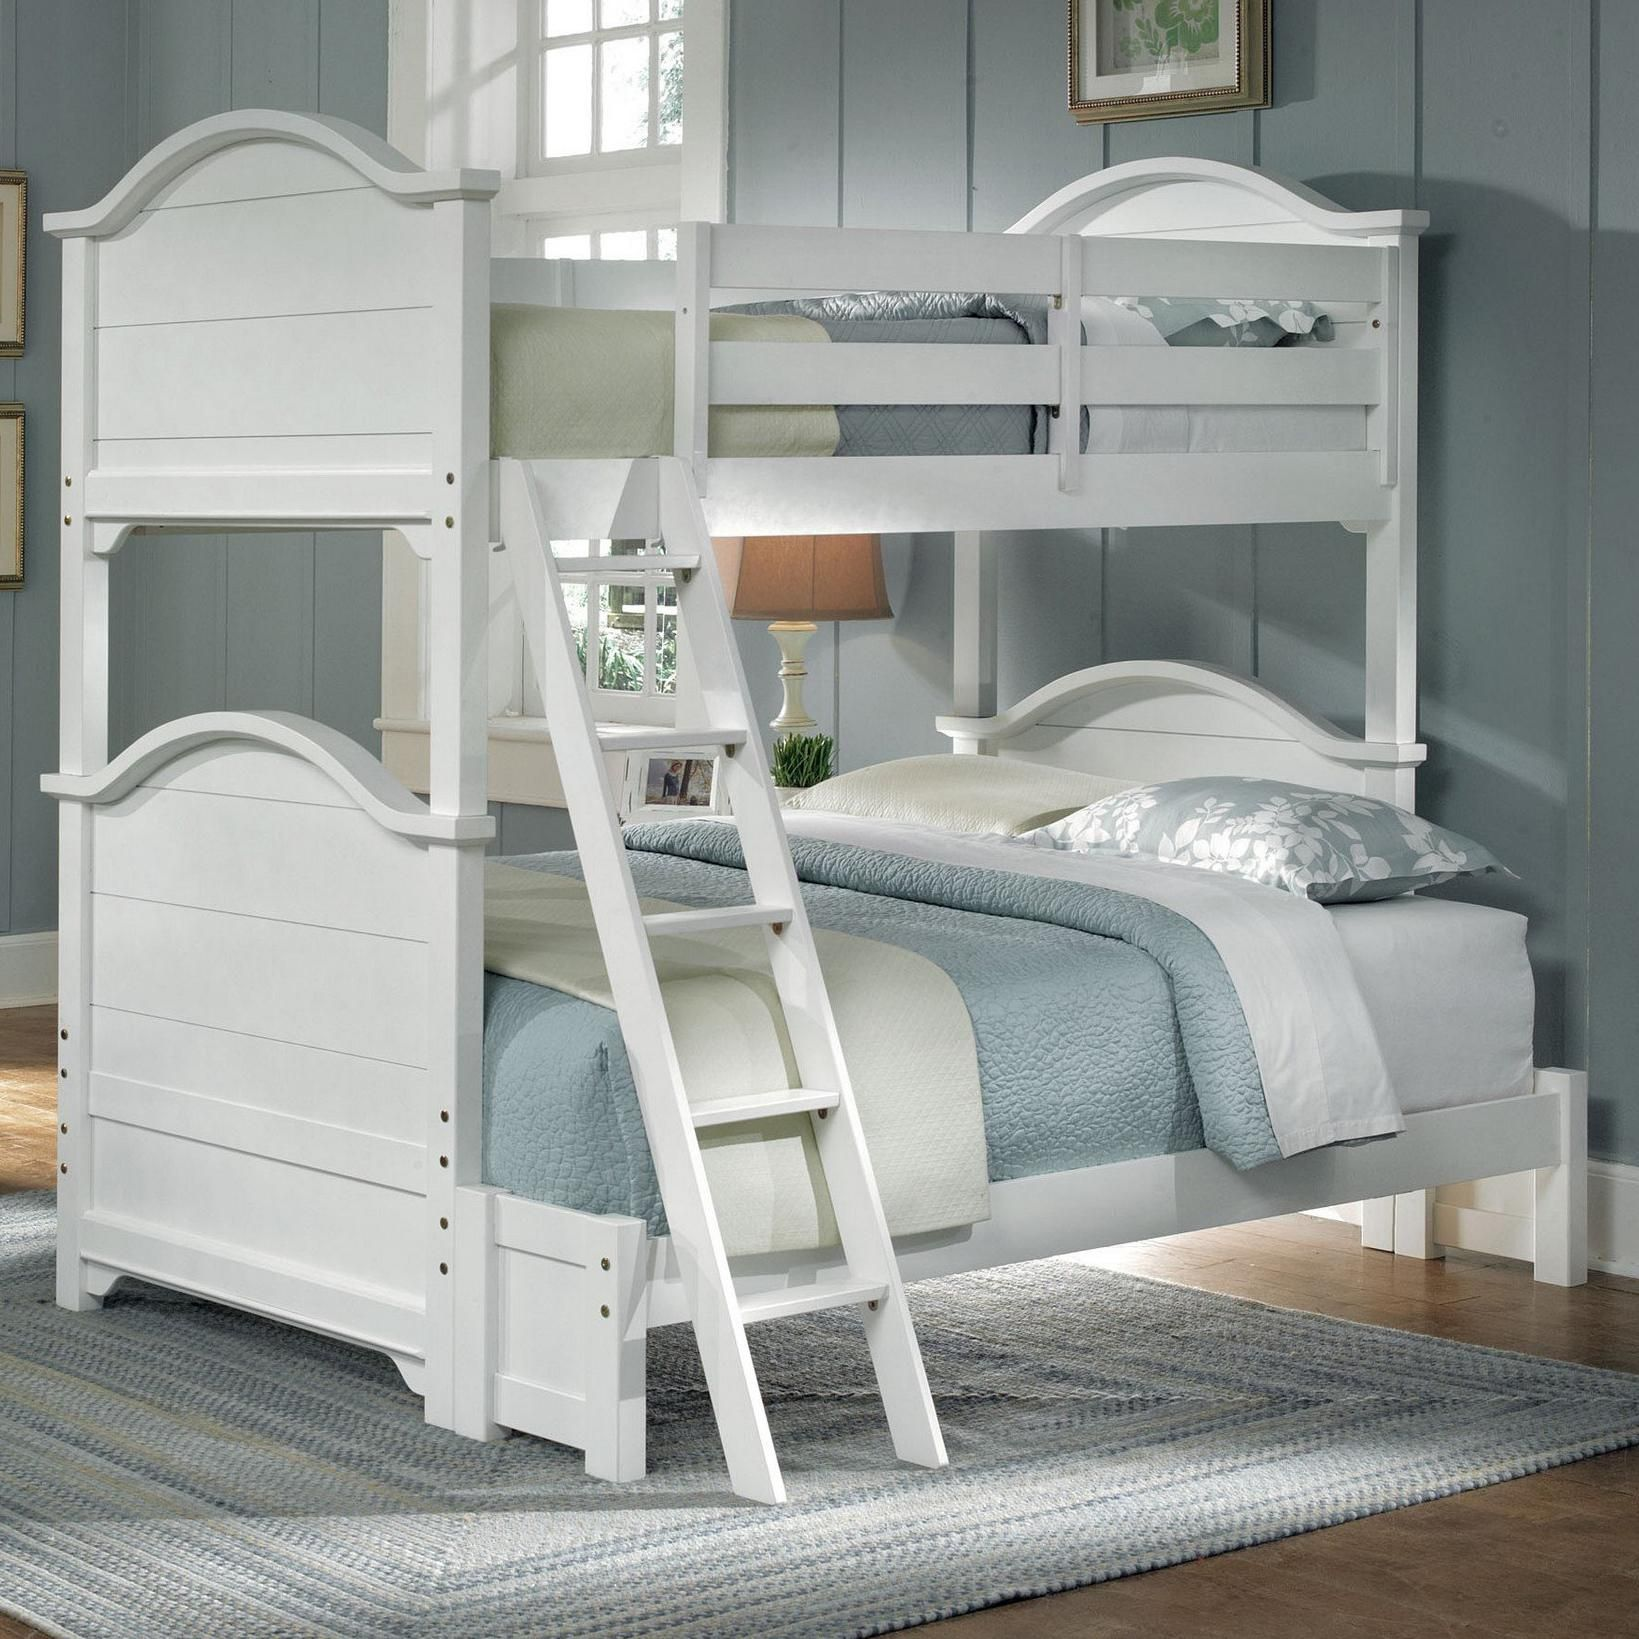 Hamilton Franklin Bunk Bed By Vaughan Bassett Johnny Janosik